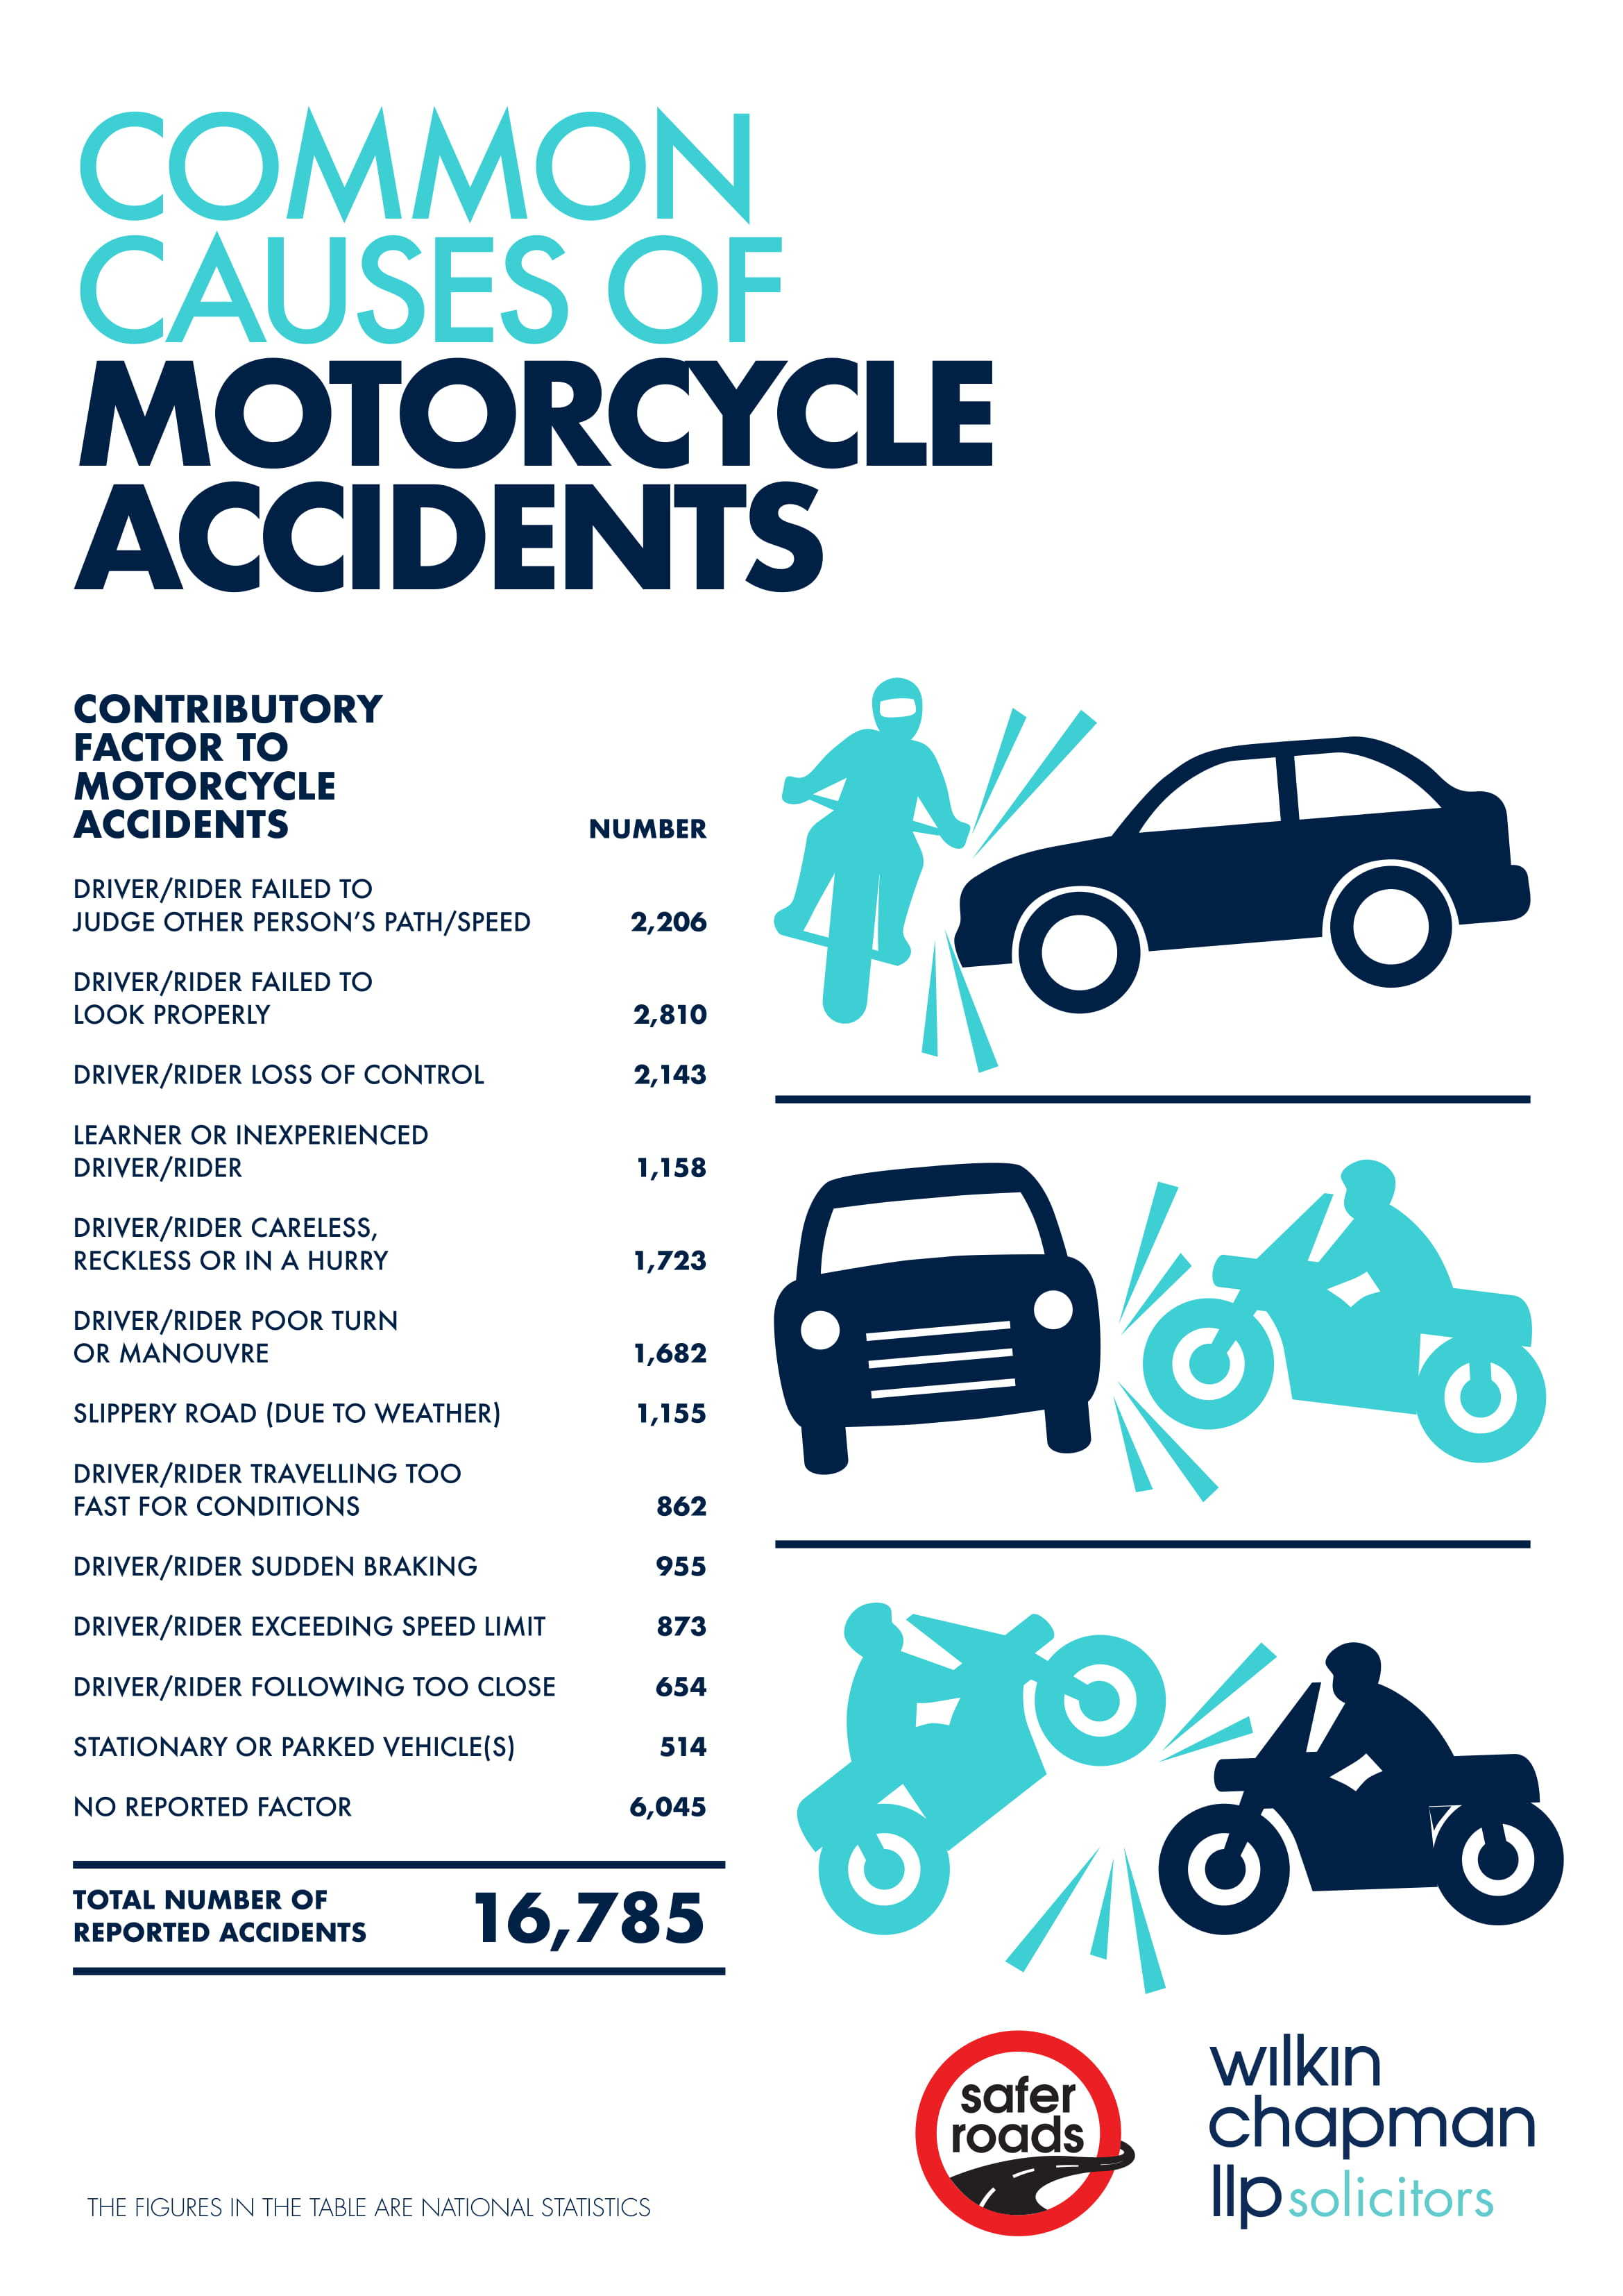 WC_CommonCausesofAccidents_A3poster_infographic-1.jpg#asset:4570